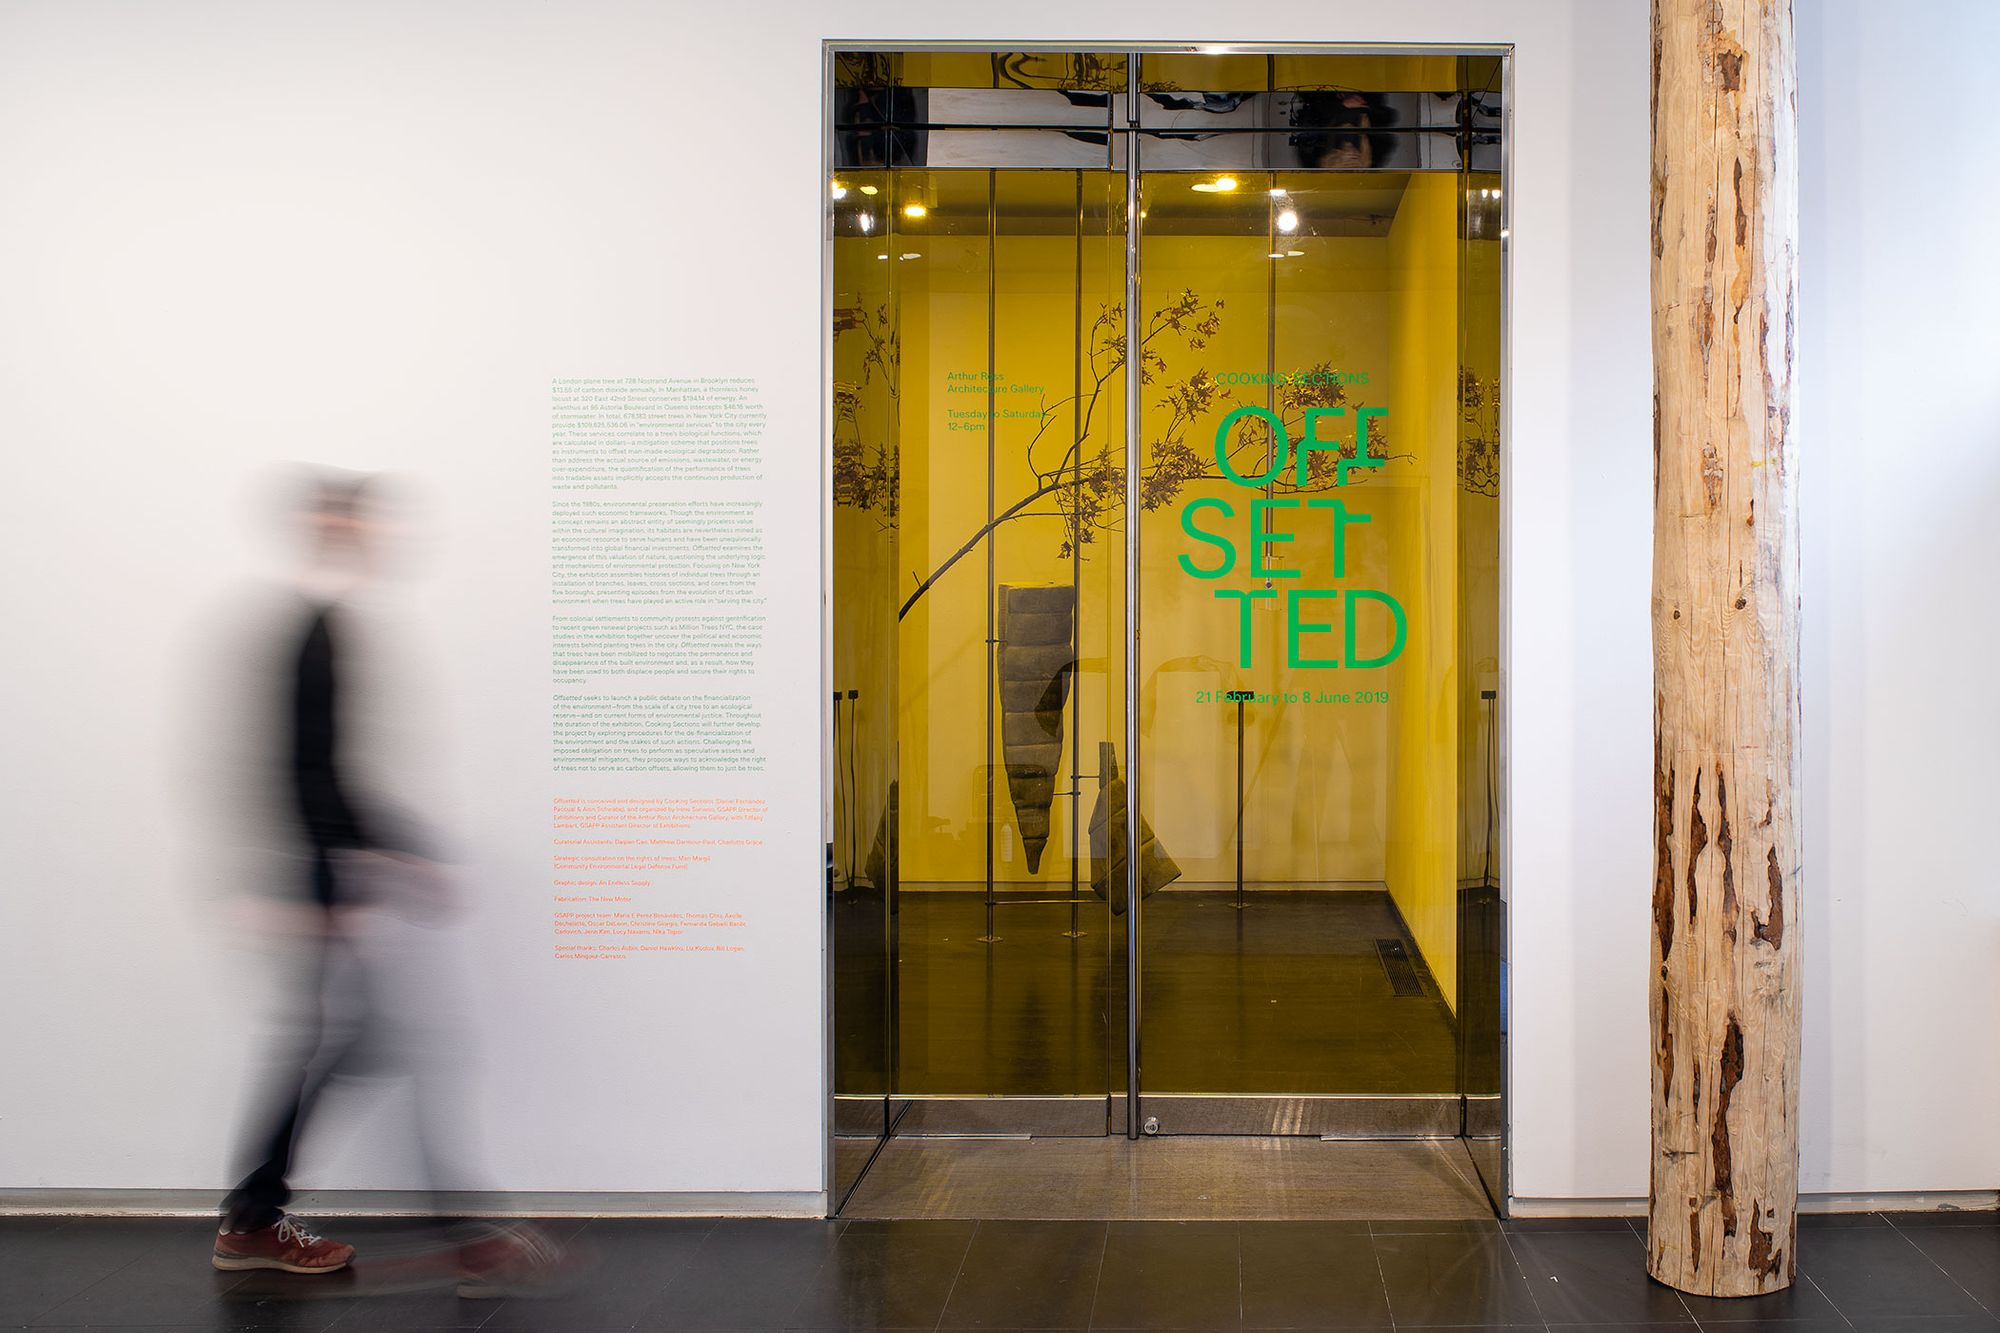 Photograph of interior exhibition vinyl. The title 'Offsetted' in green cut vinyl on glass door to gallery and green interpretation text on a white wall next to the door.